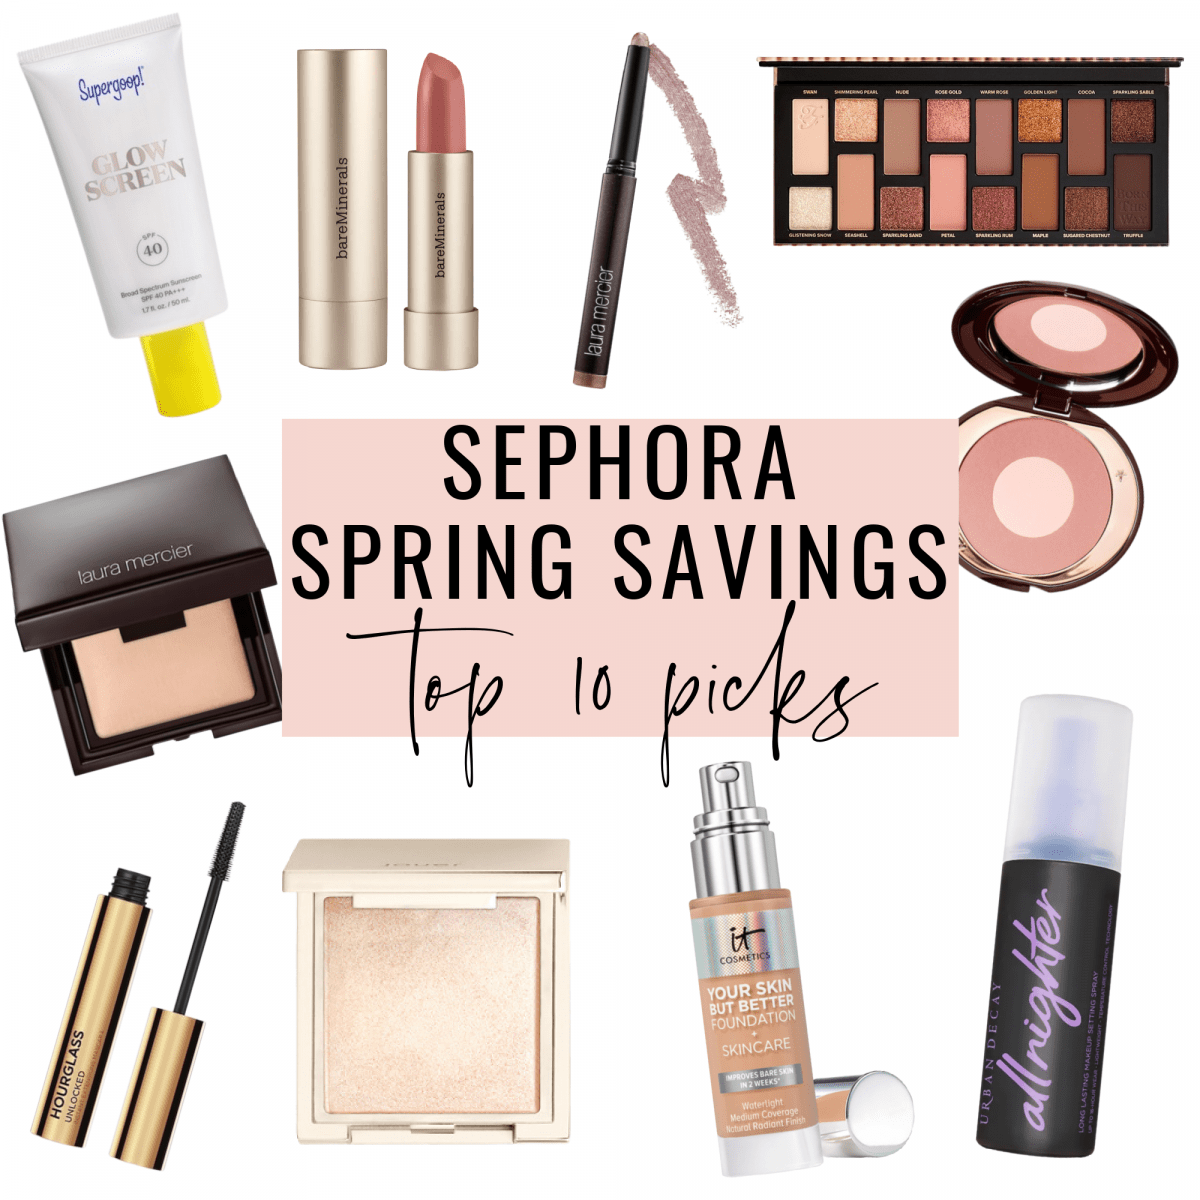 Sephora Spring Savings Event 2021 - Houston beauty influencer Meg O. shares her top beauty picks from the sale